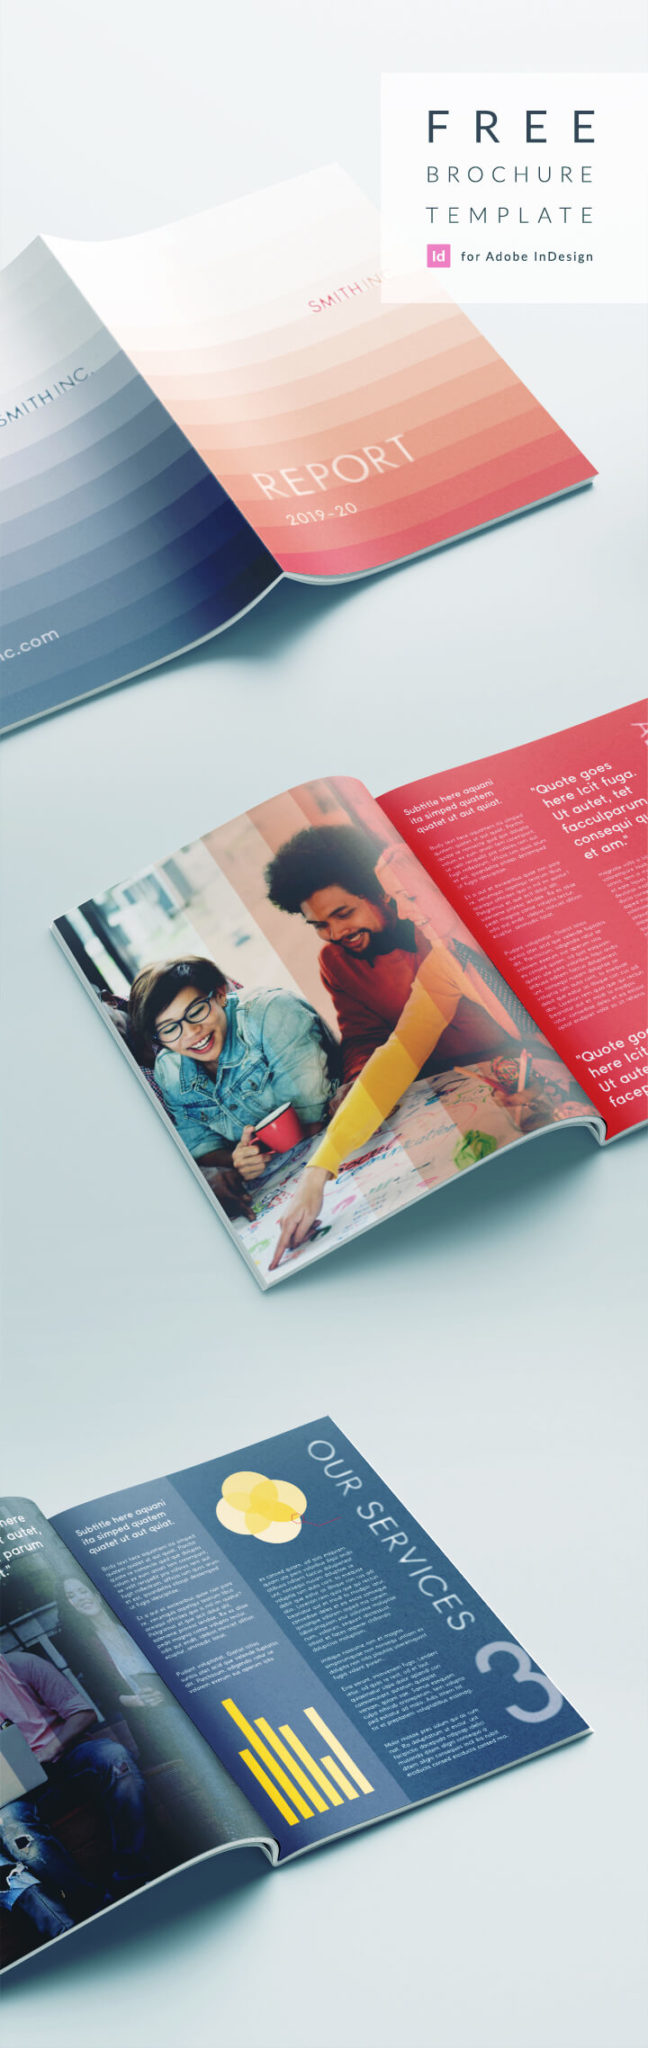 Free Bi Fold Brochure Template for InDesign - Smart Corporate Report Template for a Business Report of Company Profile.